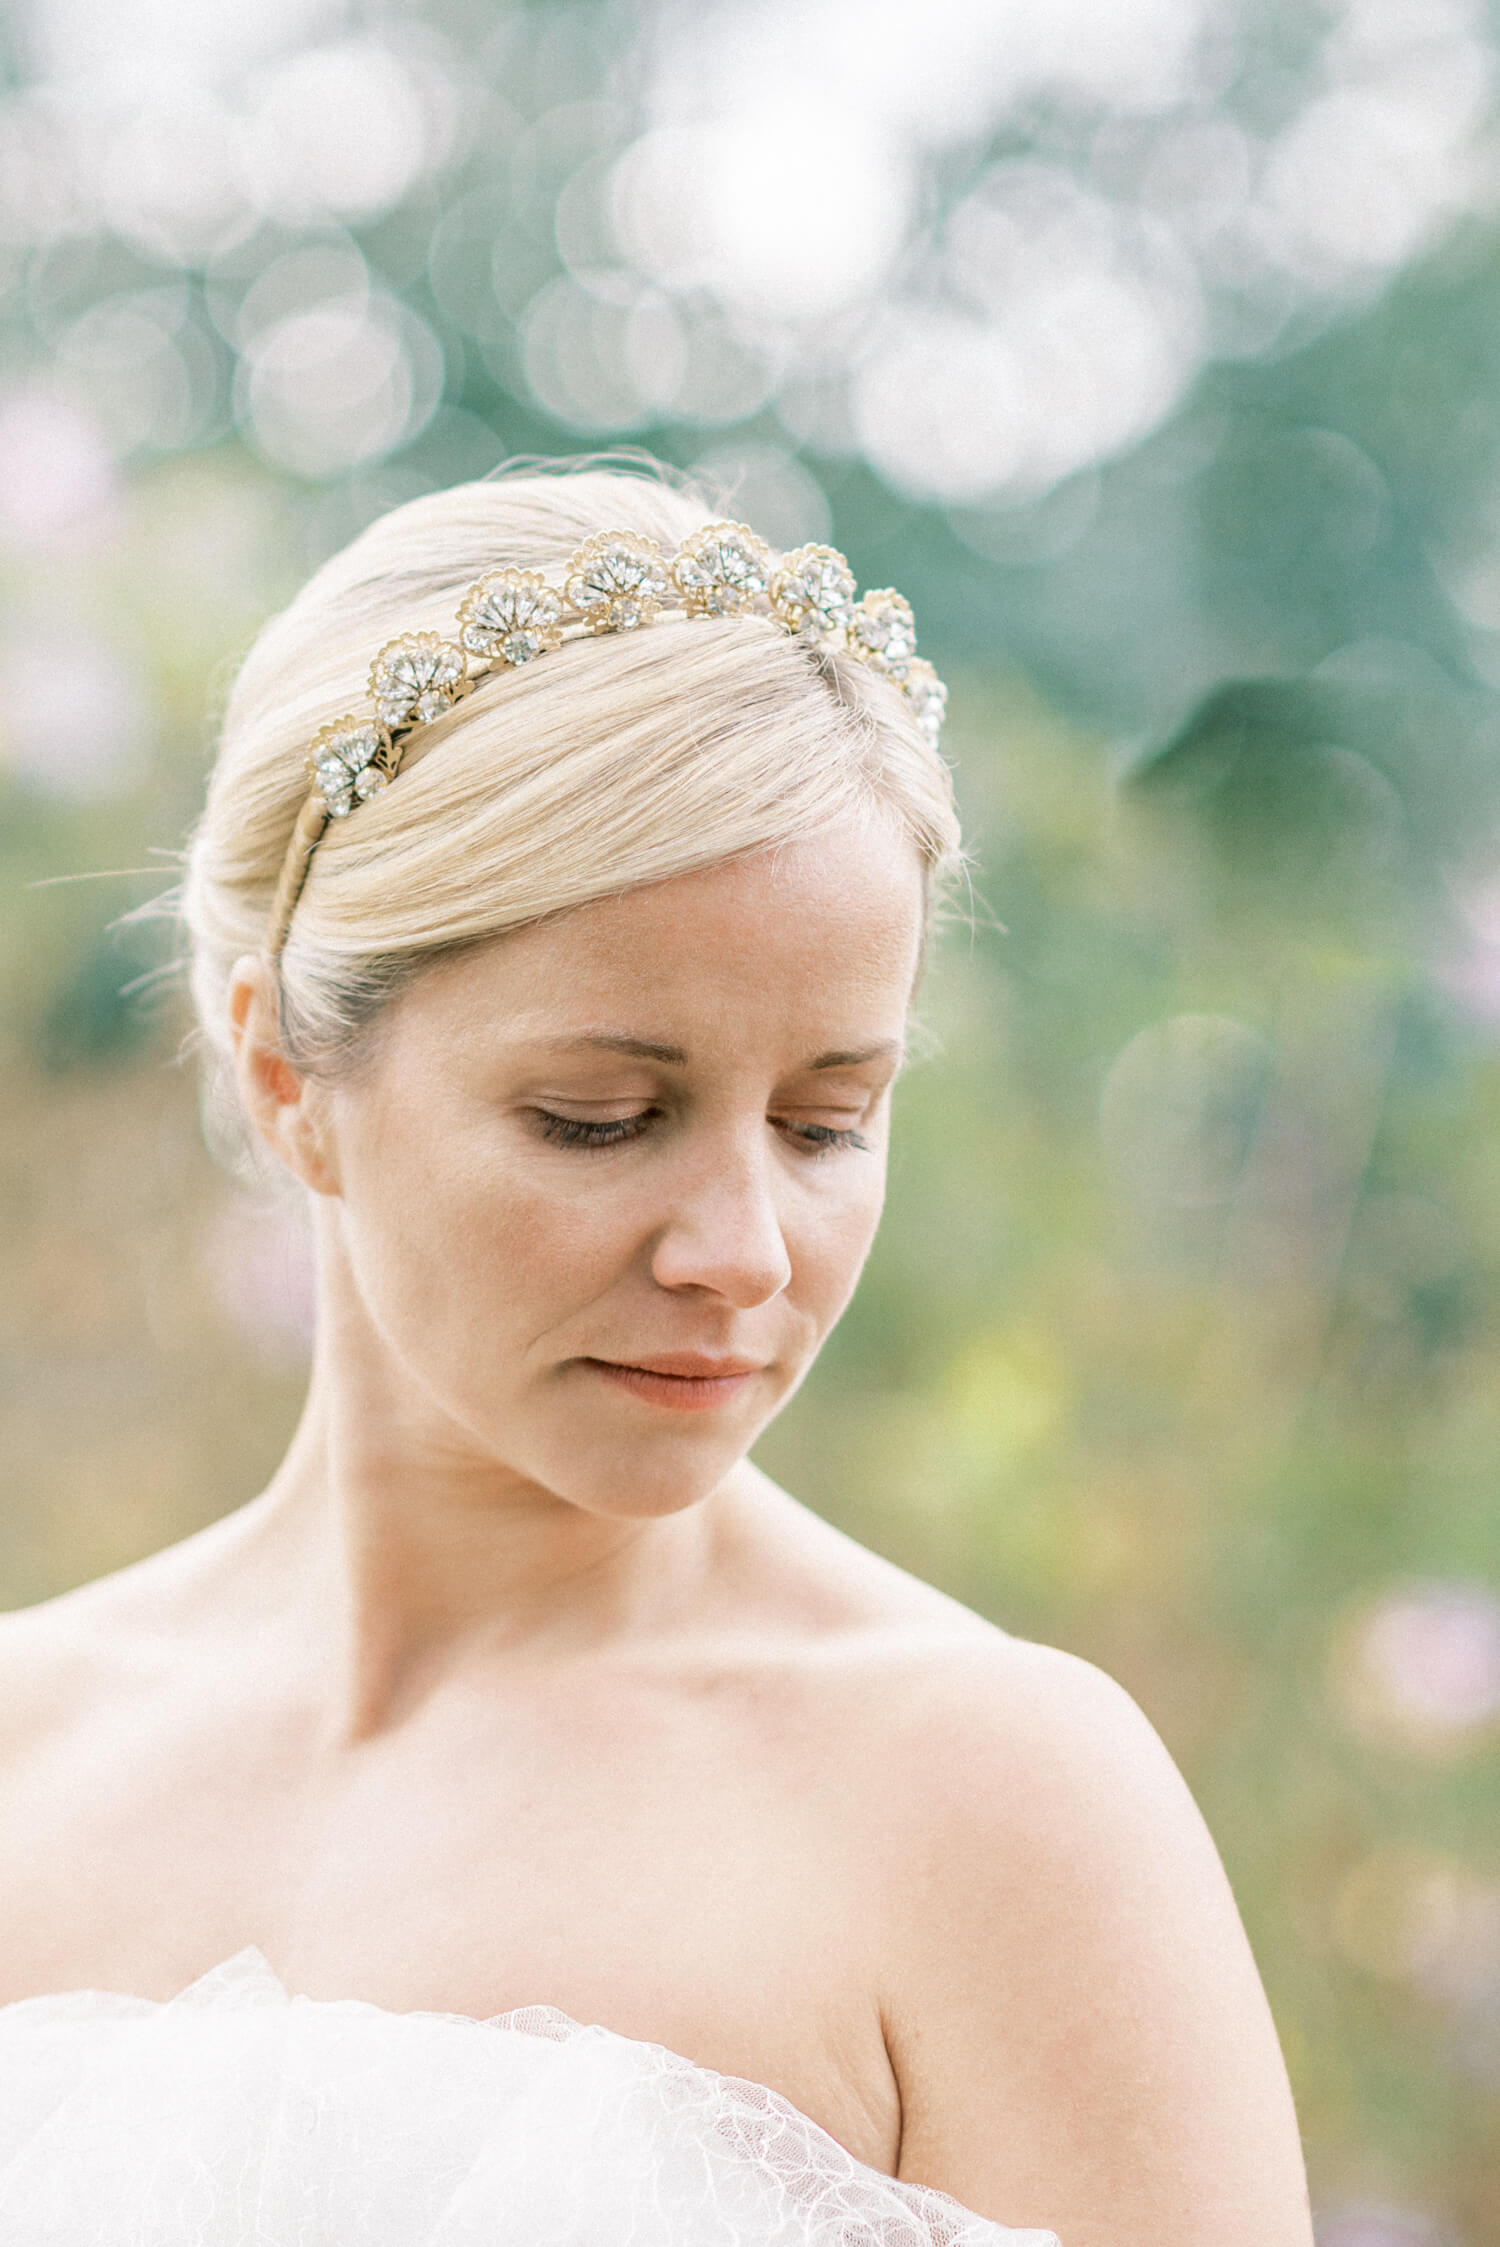 fresh and minimalist no make-up make-up look for fine art brides by Victoria Farr | simple updo with vintage hair band from Agnes Hart